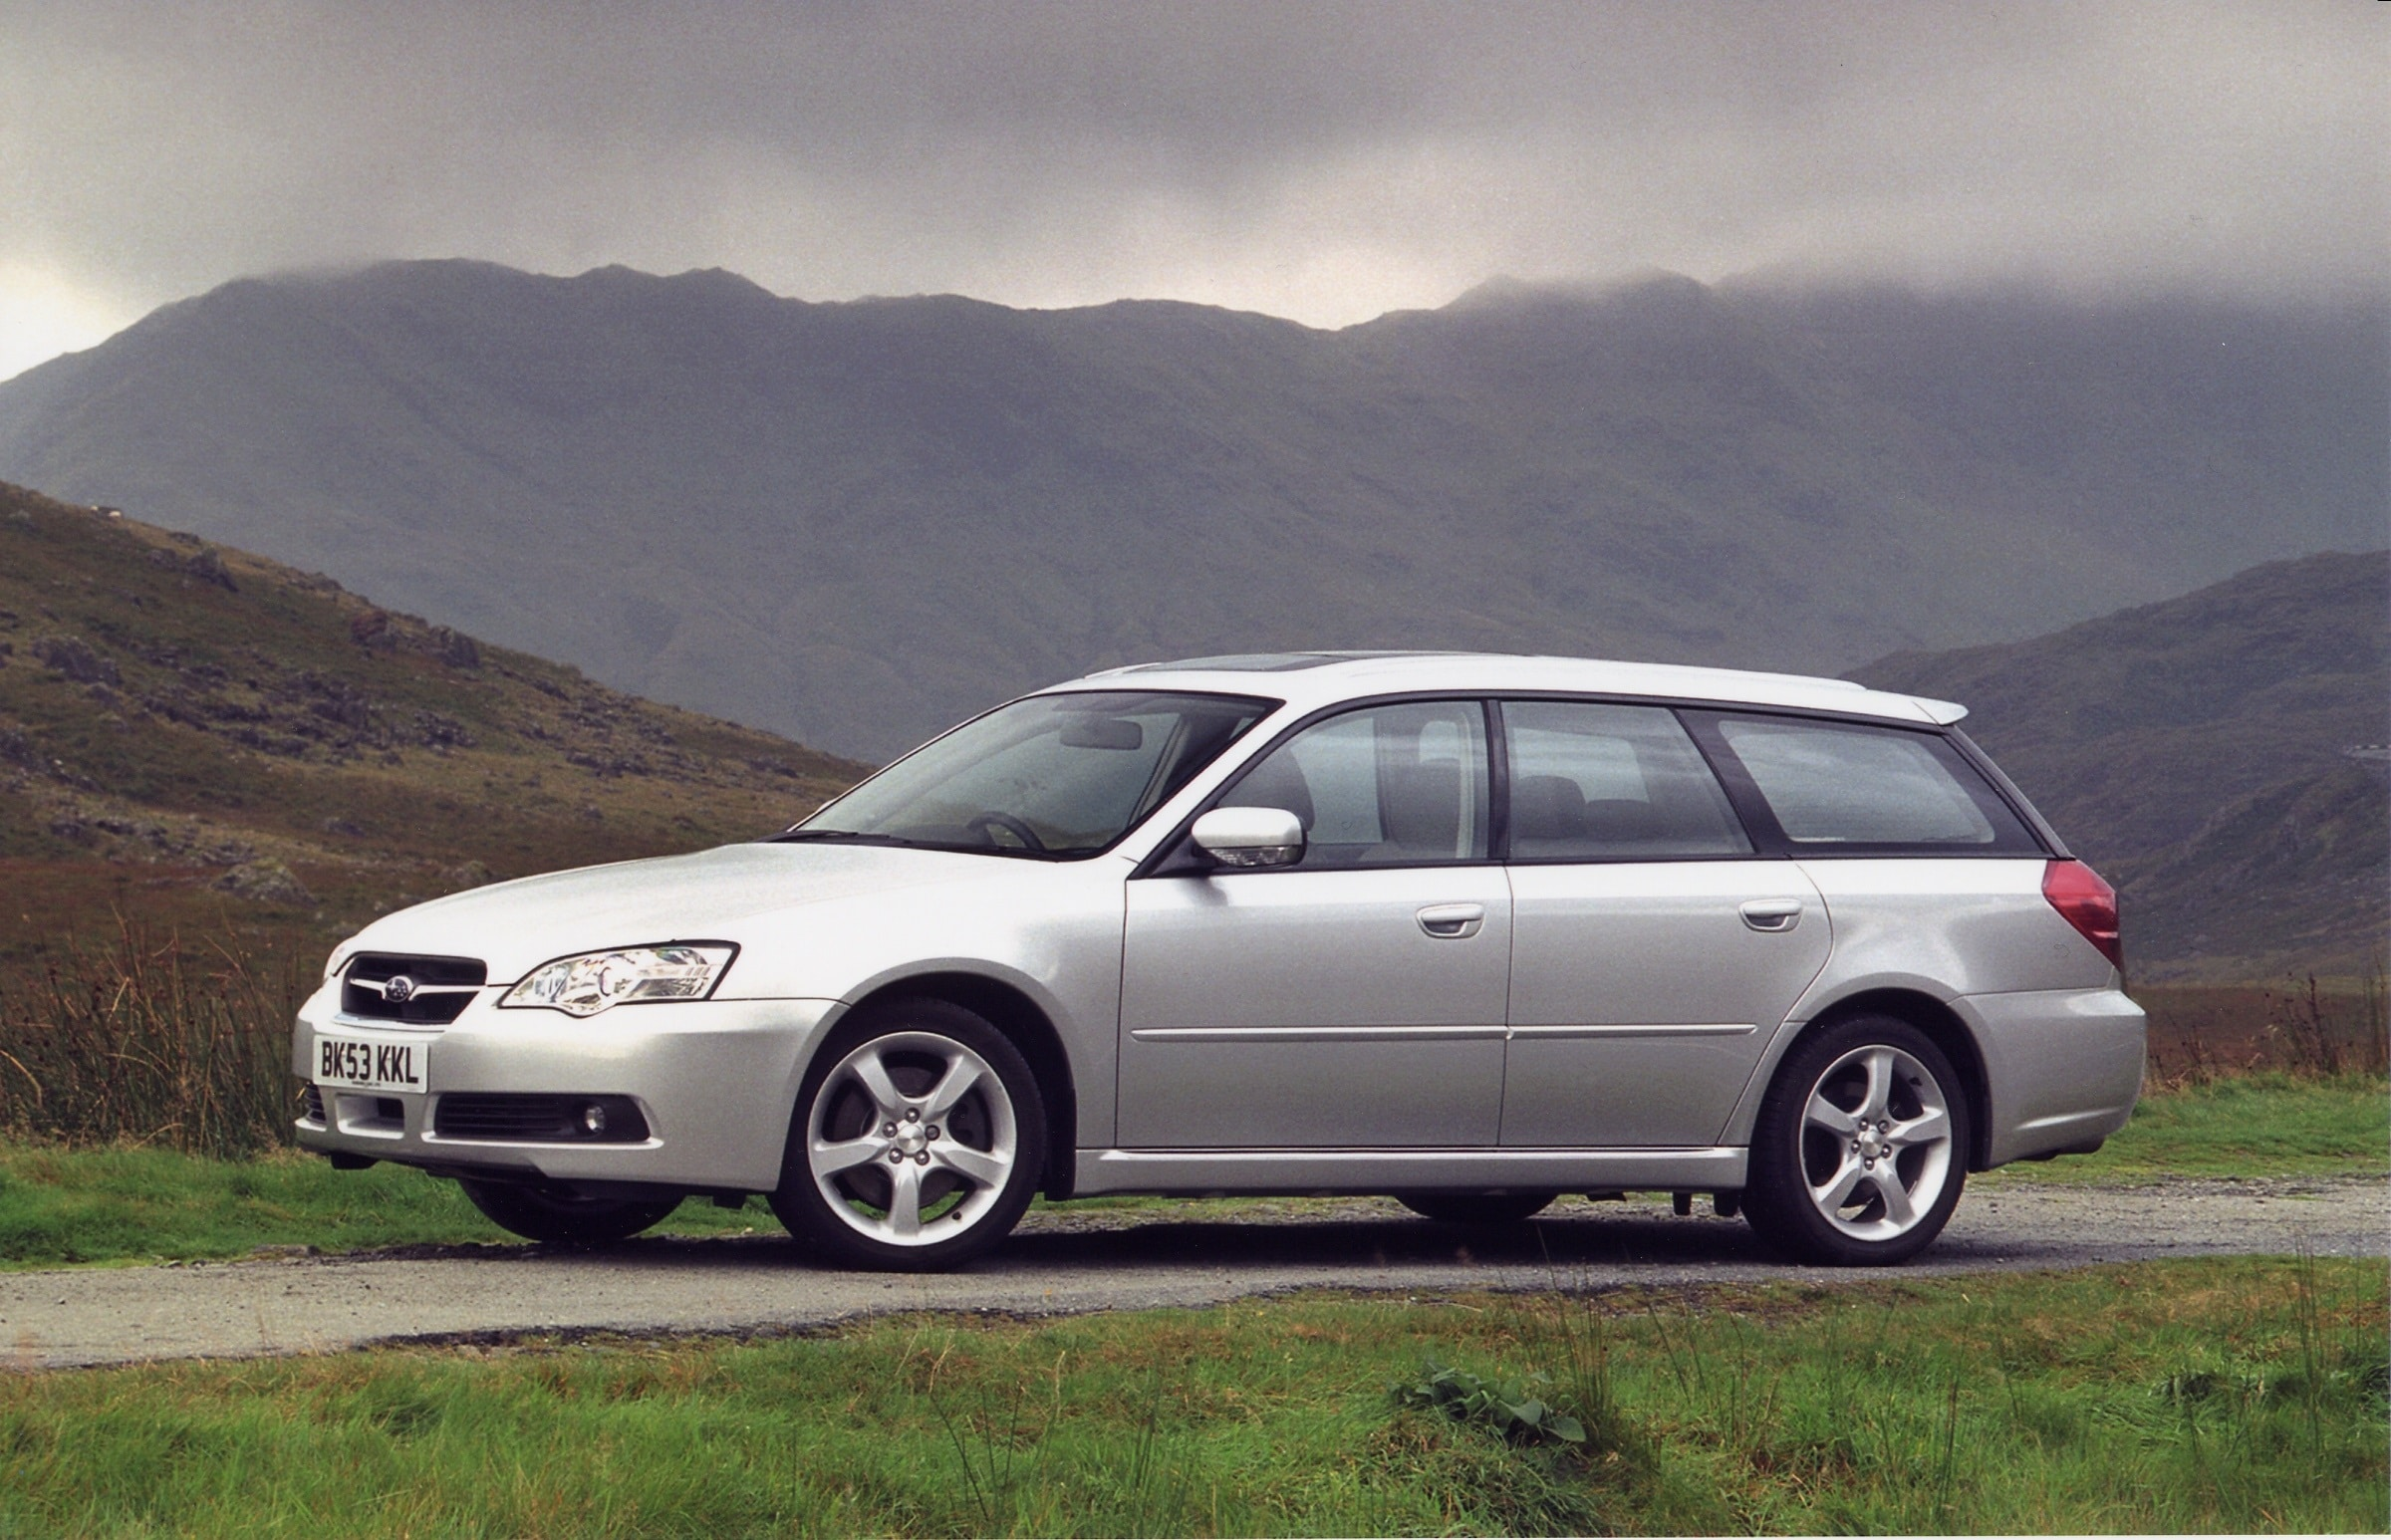 Subaru Legacy, Subaru, Legacy, four-wheel drive, 4x4, estate car, estate, Japanese car, bargain car, family car, cheap car, motoring, automotive, rally car, Impreza, Subaru Impreza, Subaru Forester, Forester, autotrader, ebay, ebay motors, car, cars, car sales